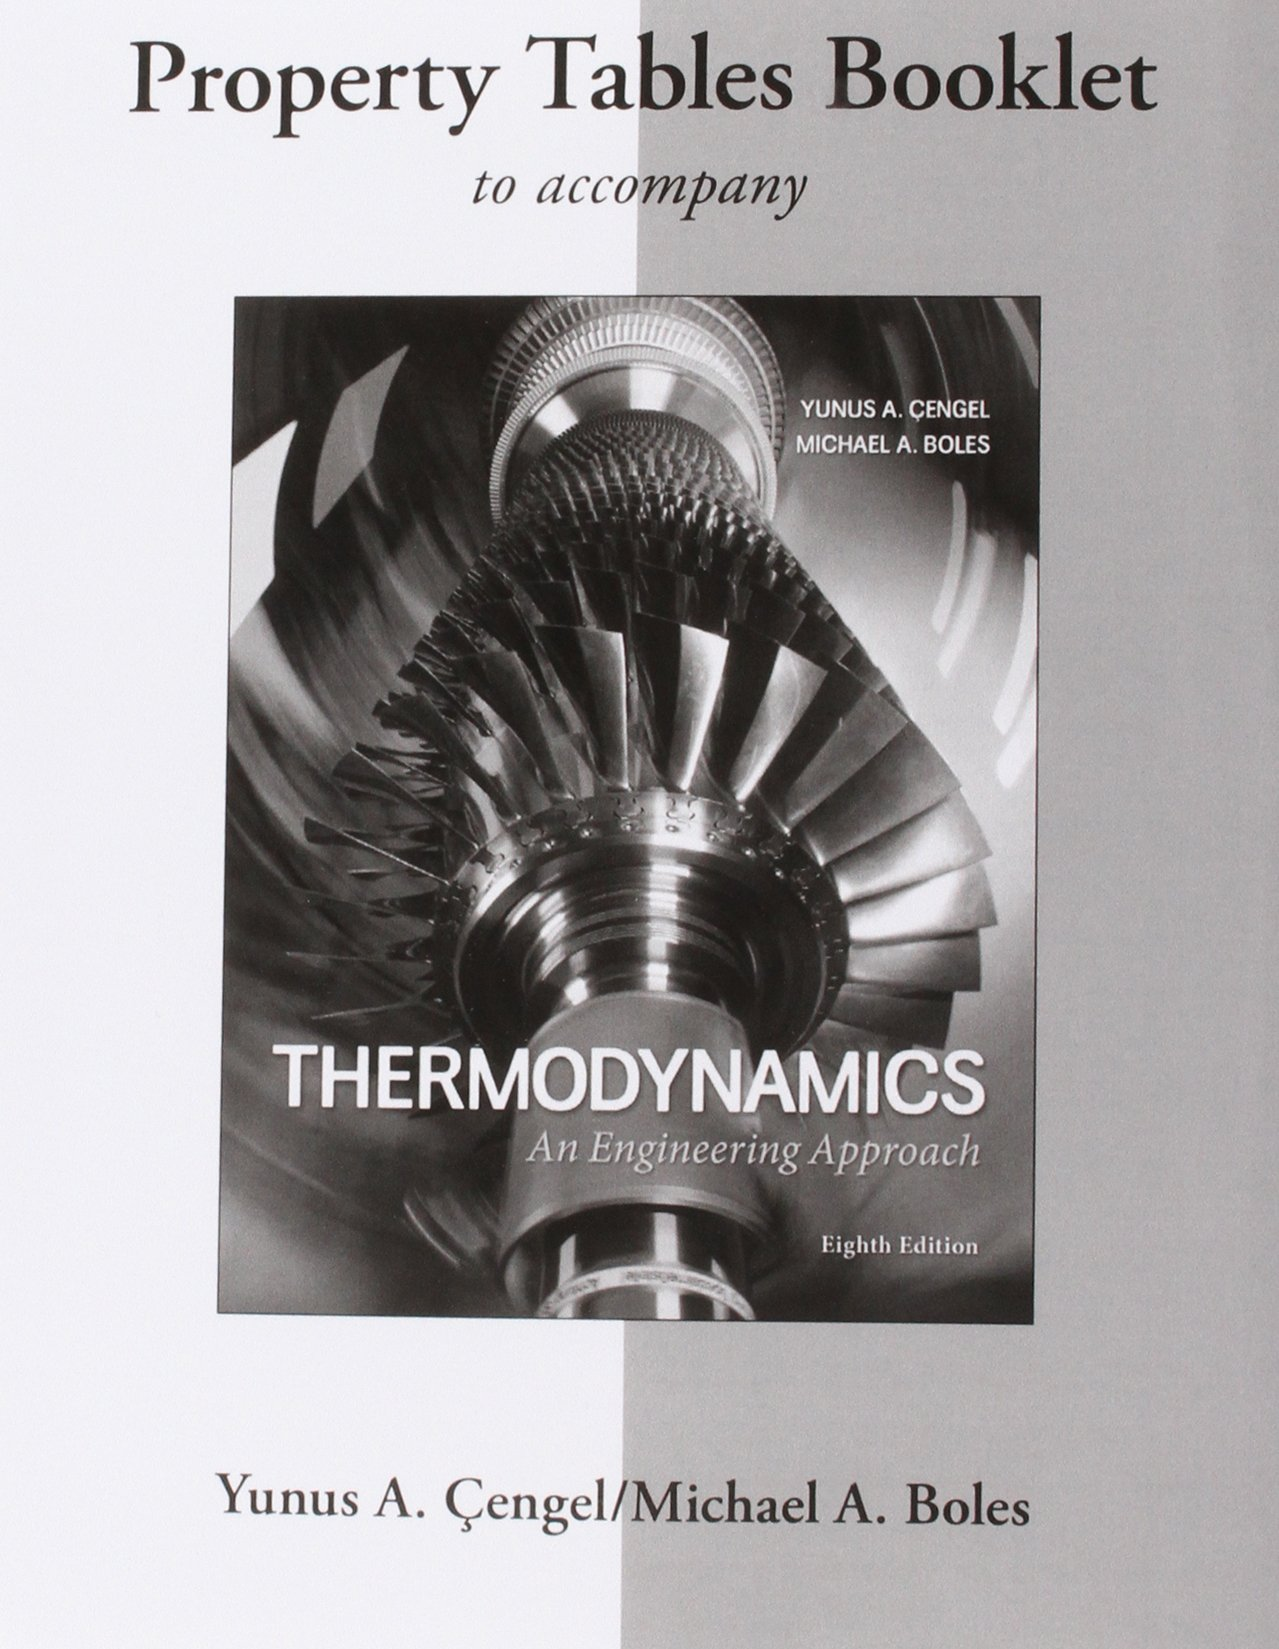 Property Tables Booklet for Thermodynamics: An Engineering Approach:  Amazon.co.uk: Yunus Cengel, Michael Boles: 9780077624774: Books